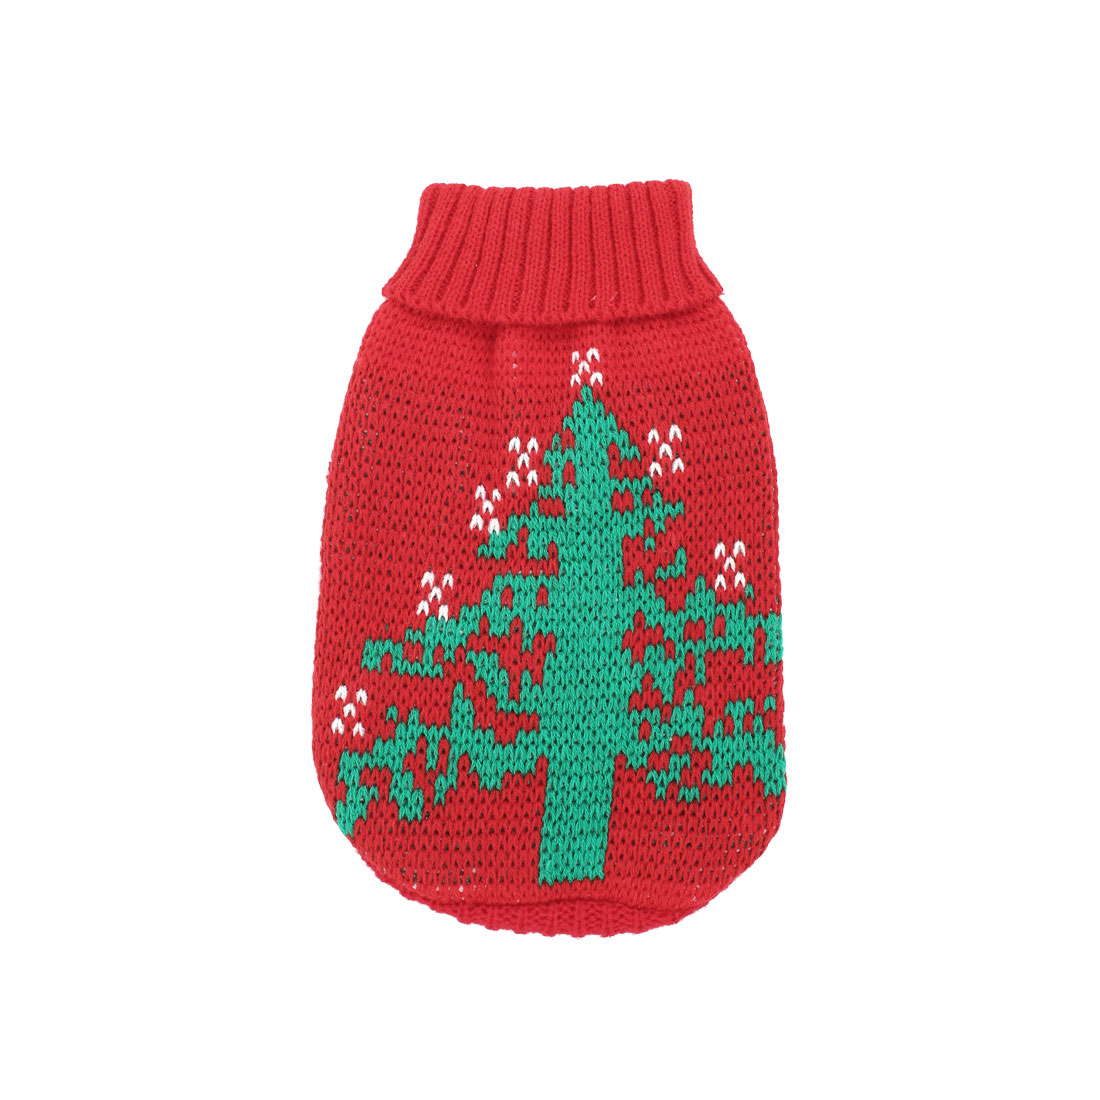 Green Red Knitted Christmas Tree Printed Sleeve Pet Yorkie Apparel Sweater XS